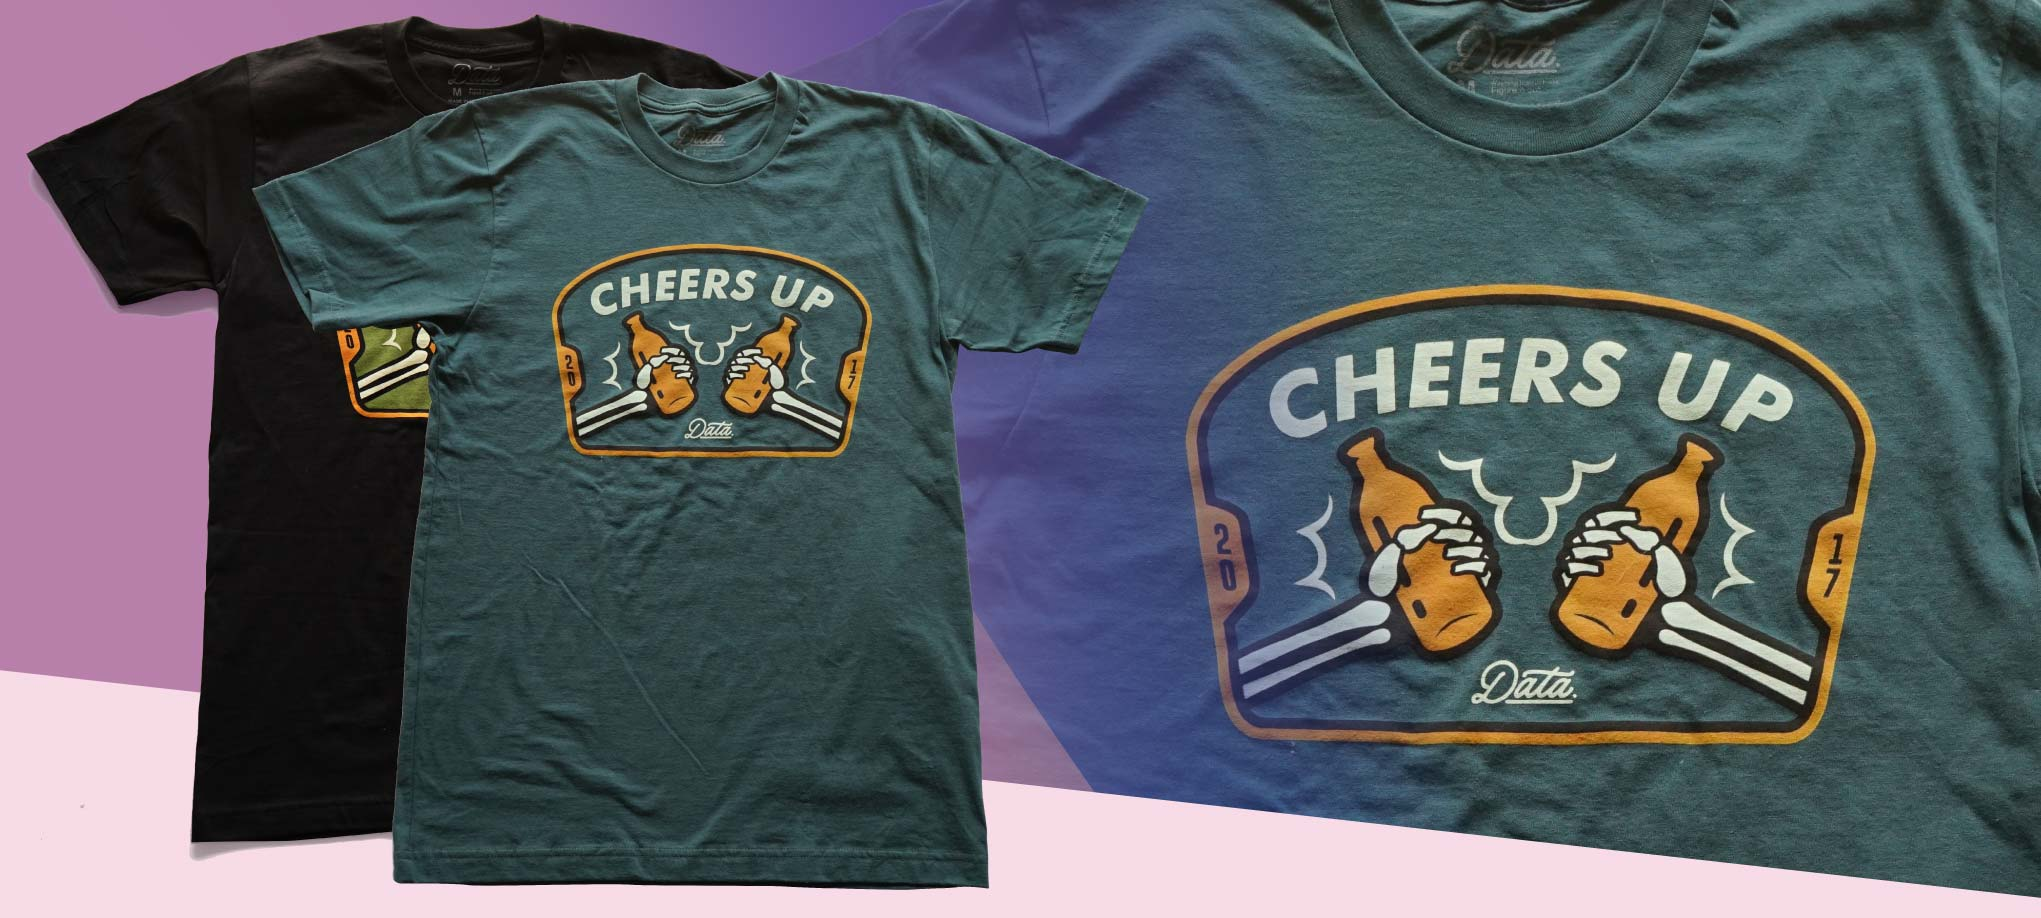 "Cheers Up"" Shirt shirts Data Crew 